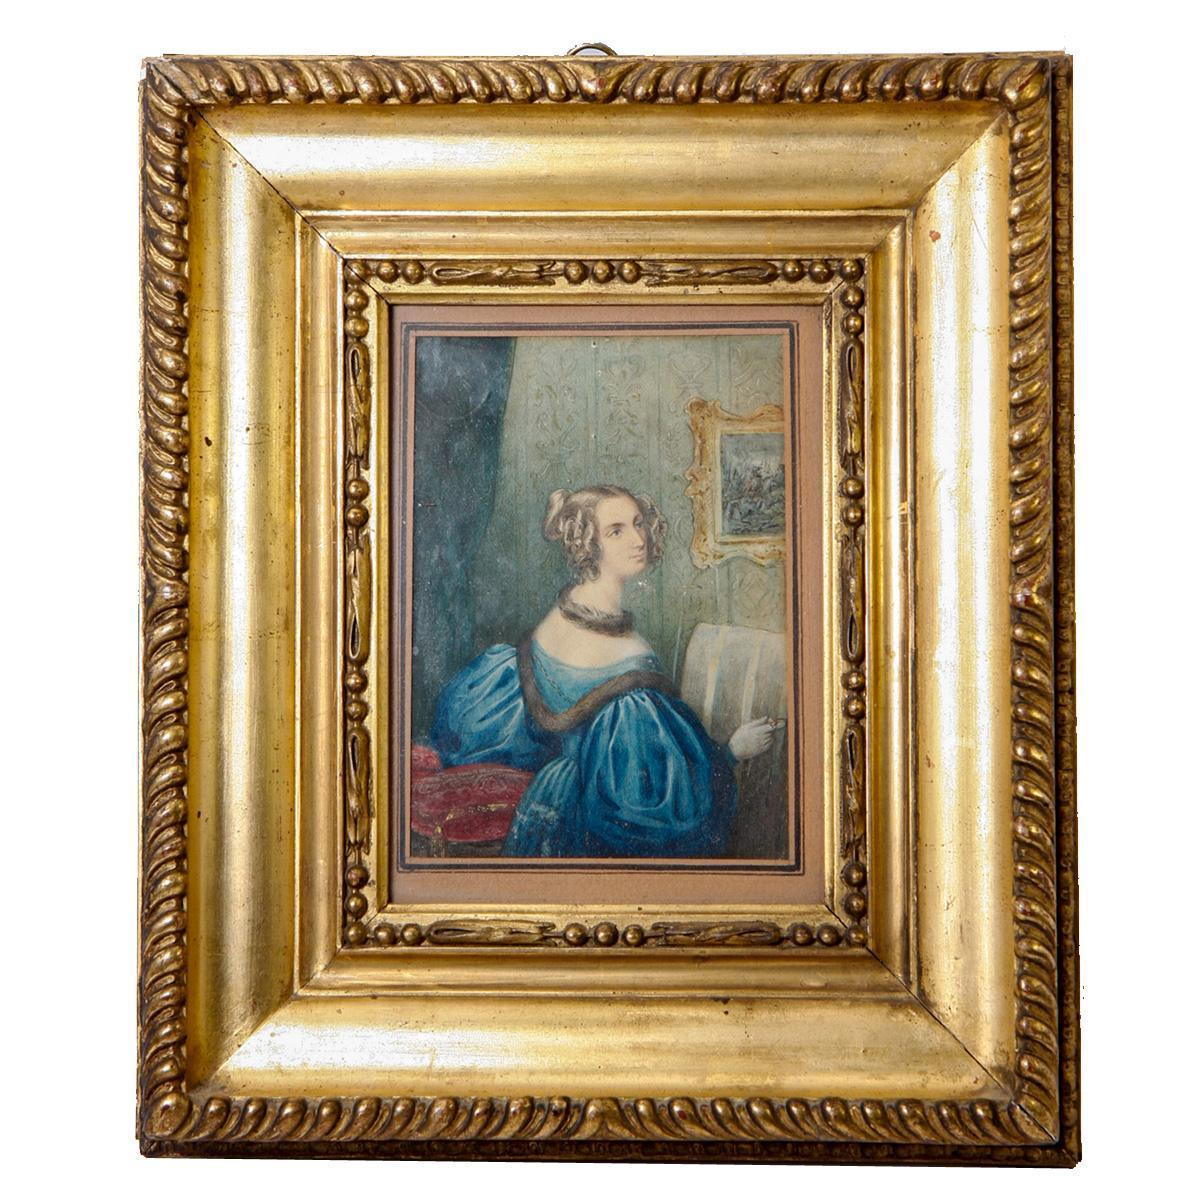 Antique Georgian Era Portrait Miniature in Frame, Woman at a Loom or Embroidery Frame